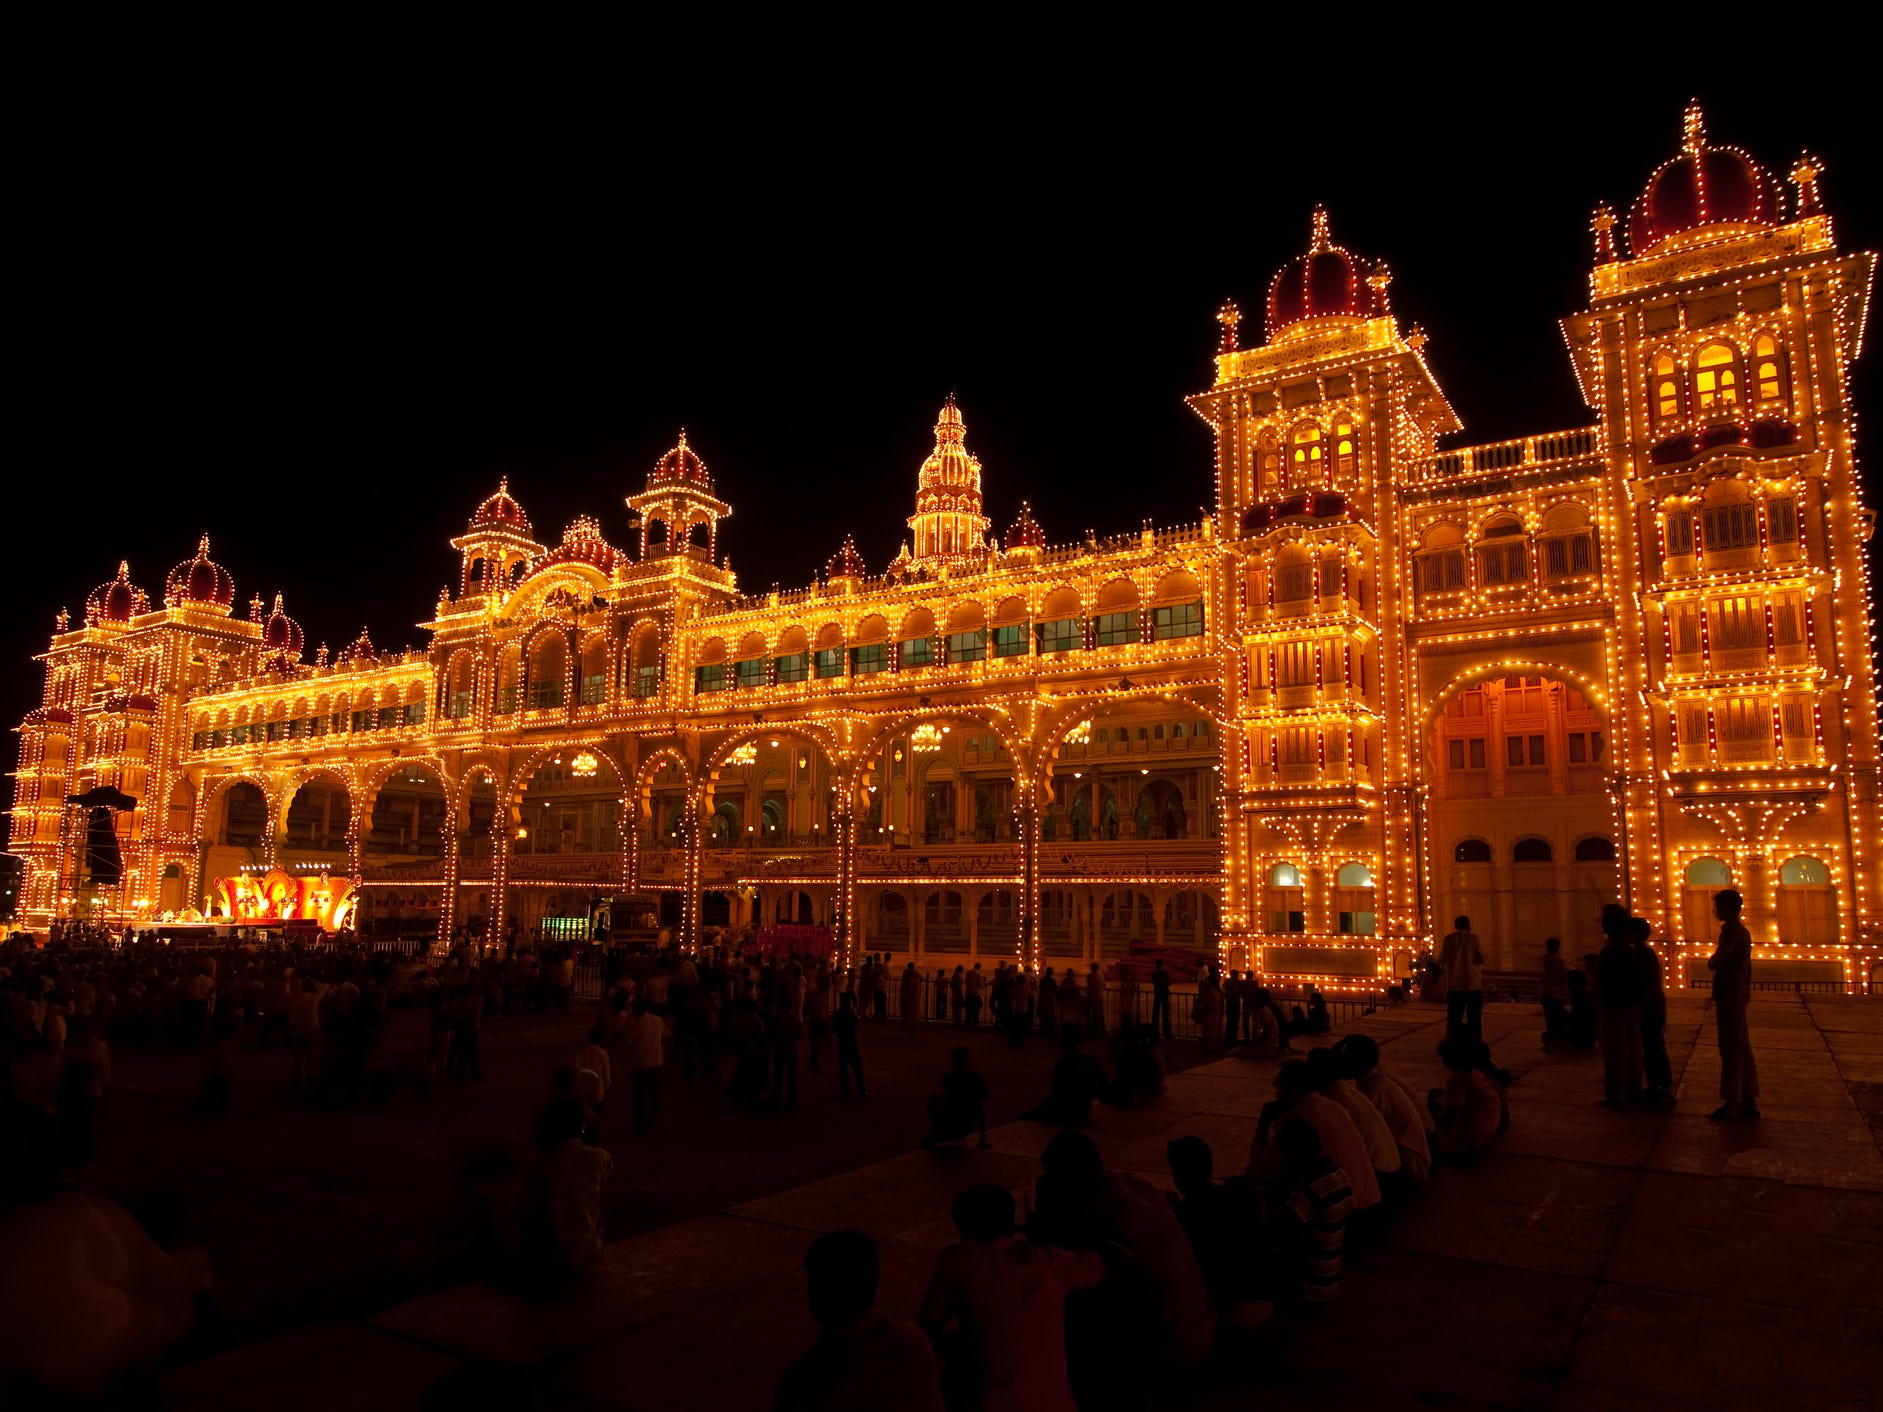 If you visit in October, you might even get a chance to see the rare appearance of the golden throne. The seat of Mysore's former rulers is only put on display for the public during the Dasara festival. During the rest of the year, the throne is disassembled and its pieces are kept in separate lockers inside the palace. If you're in Mysore on a Sunday evening, don't miss the weekly light show that showers the palace in golden light.